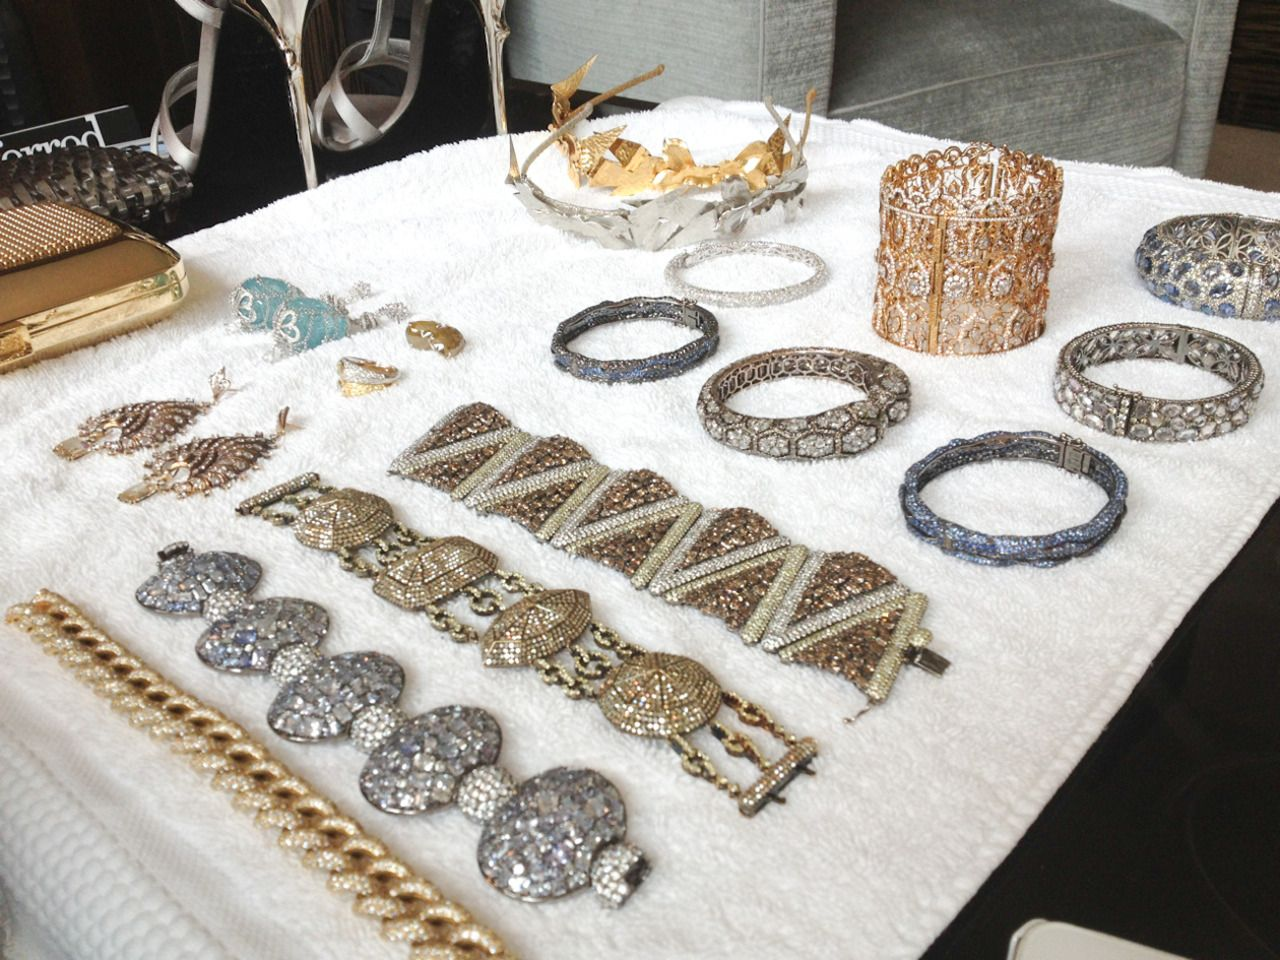 NYC Bling Ring. Shout out to ring leader Lorraine Schwartz.